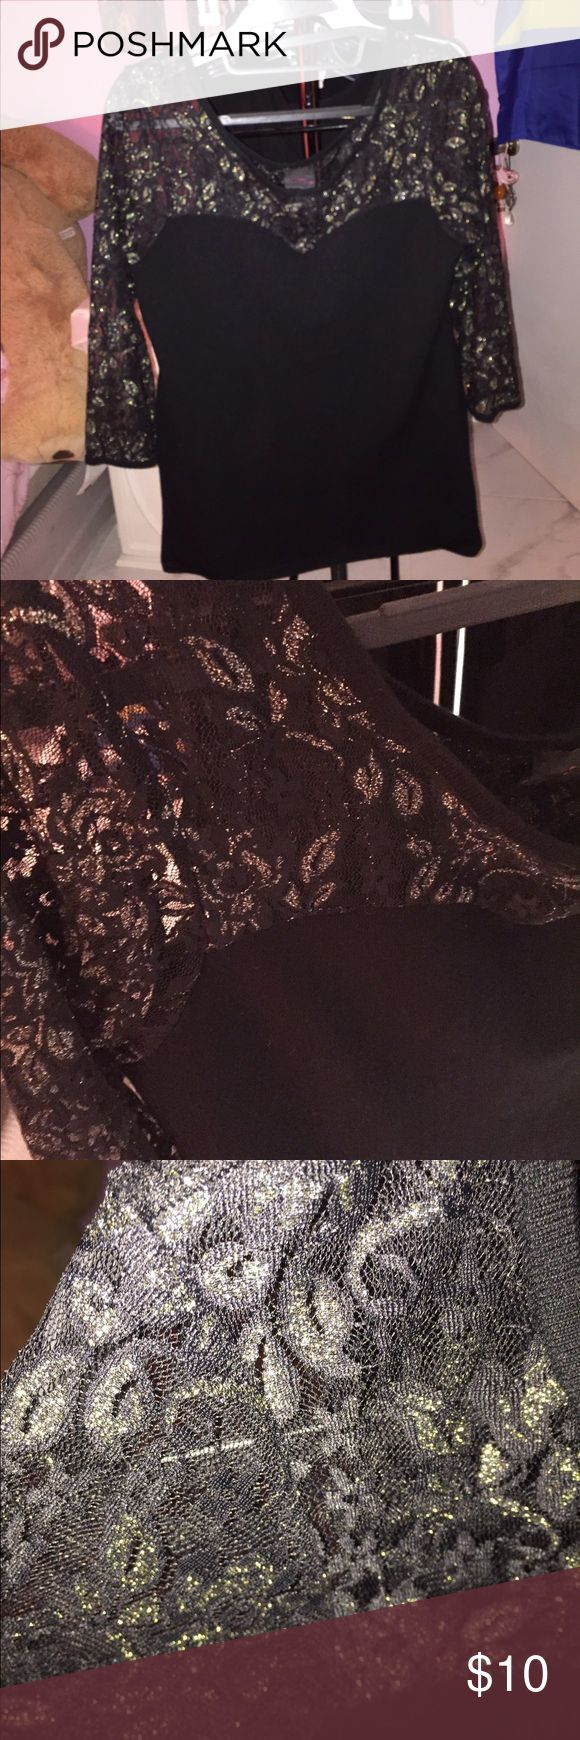 2b bebe black gold lace sweater top 3/4 sleeves, stretchy material except for lace portion 2b bebe Tops